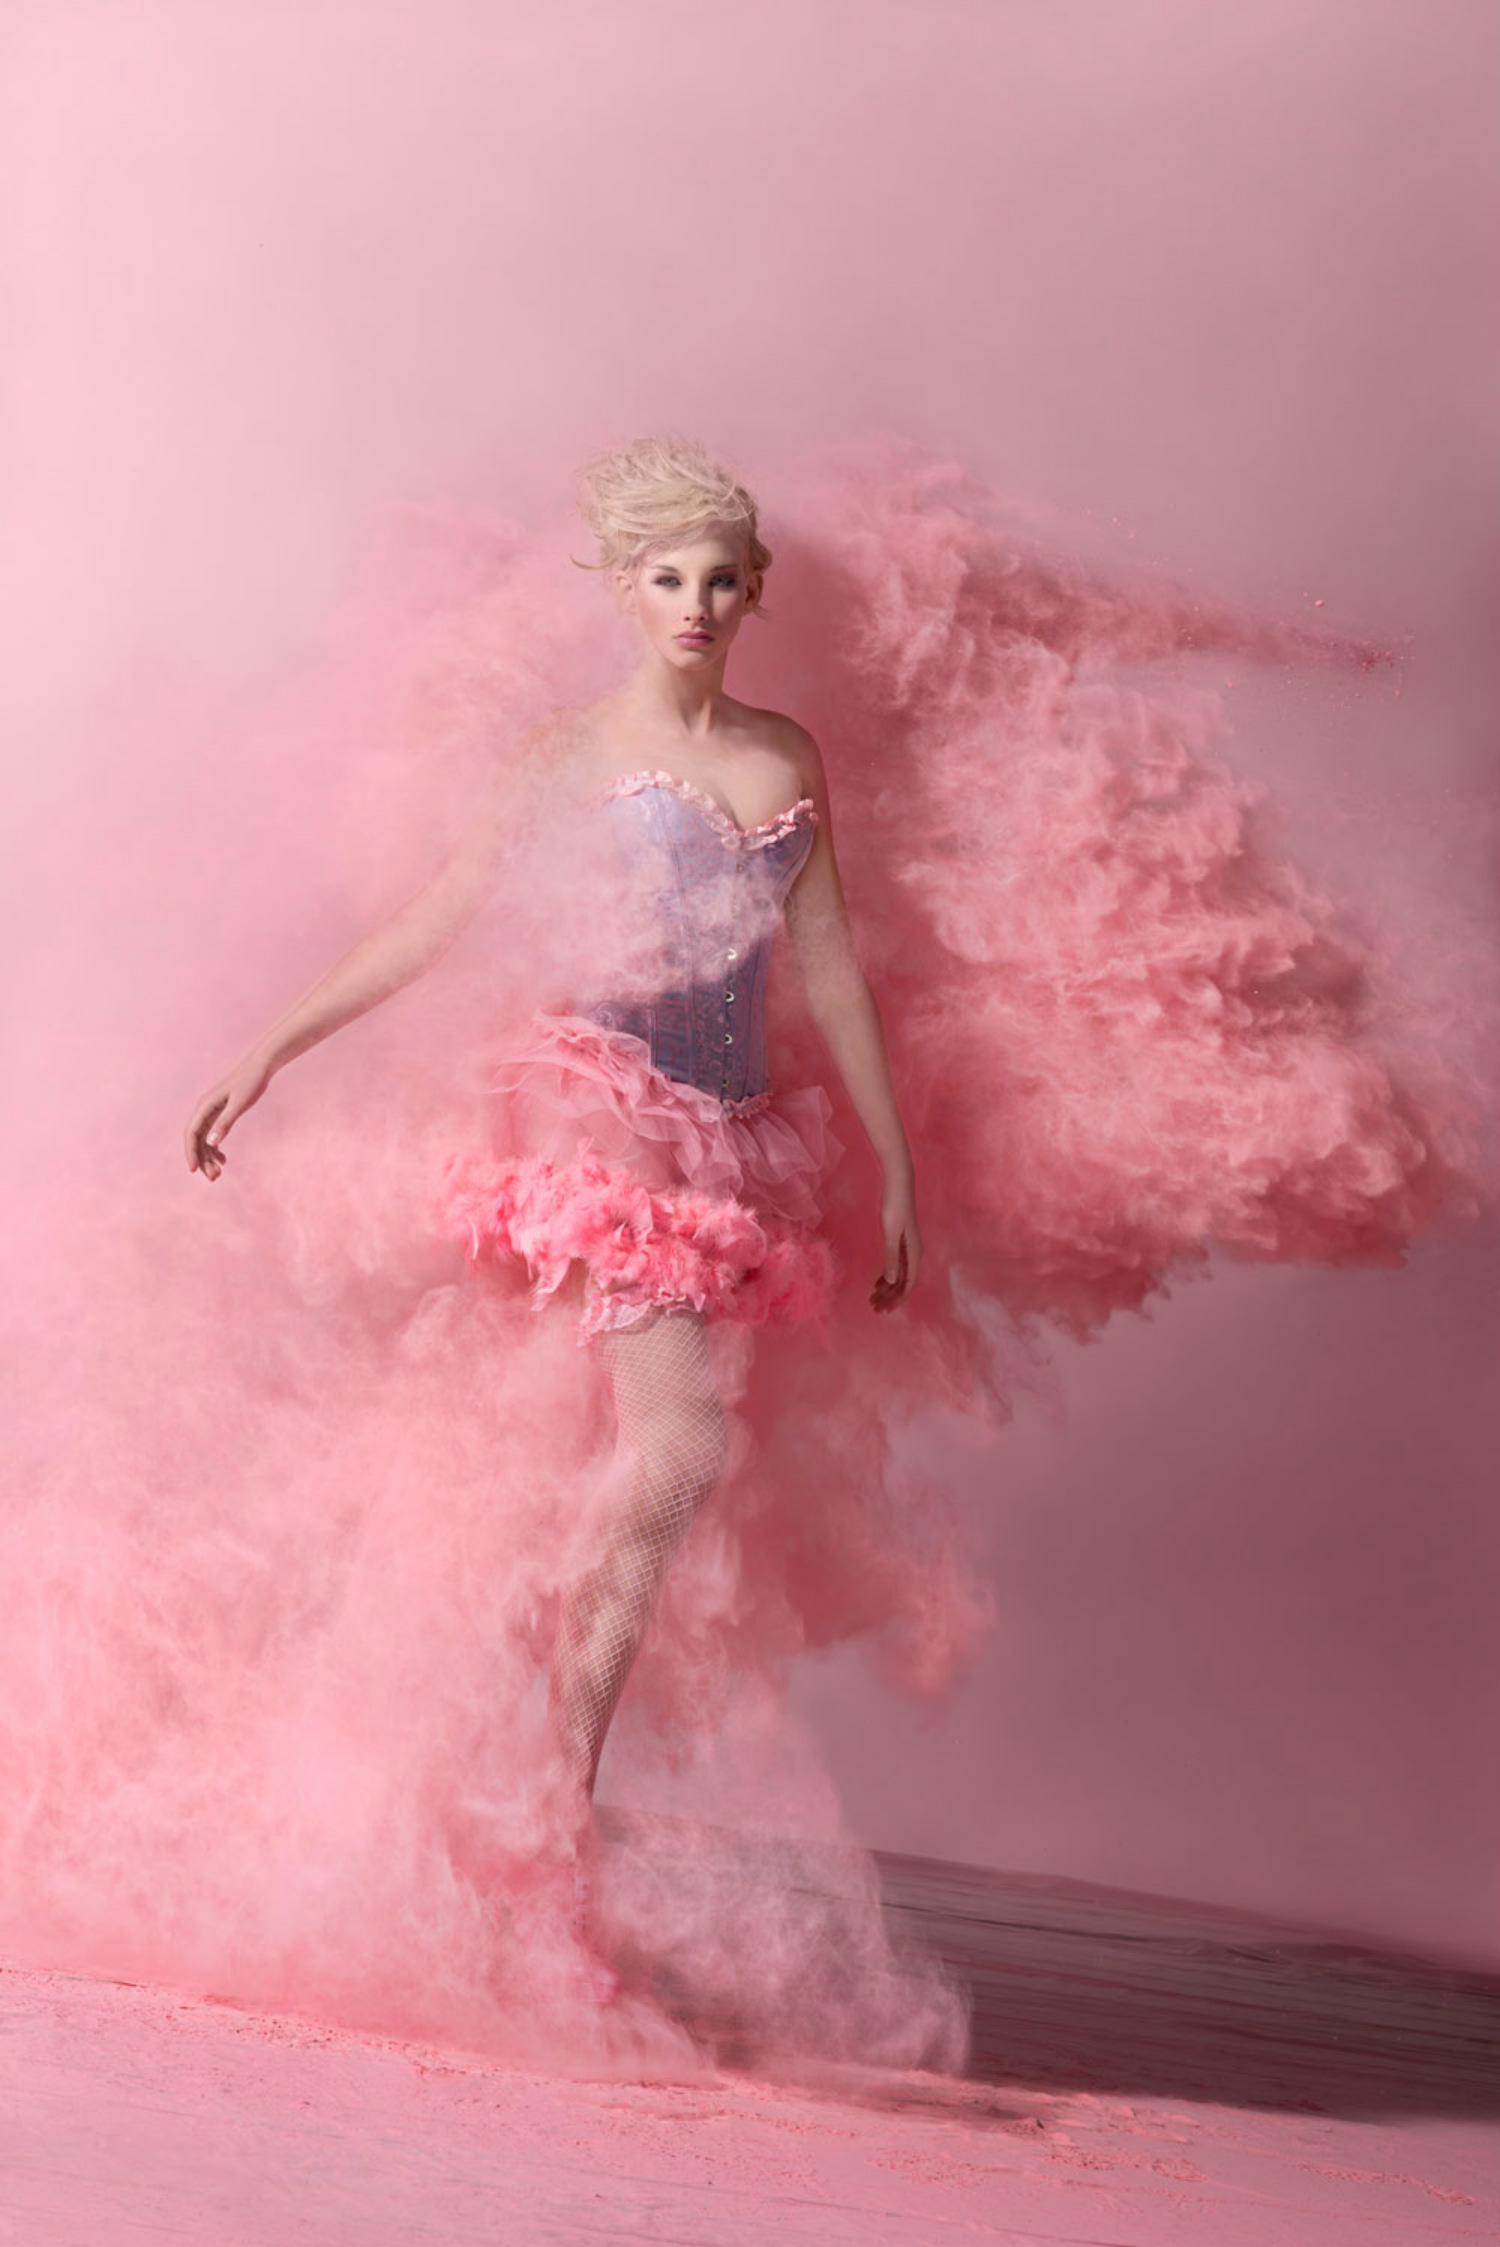 oliver oettli powder photography model fashion pink dust cloud